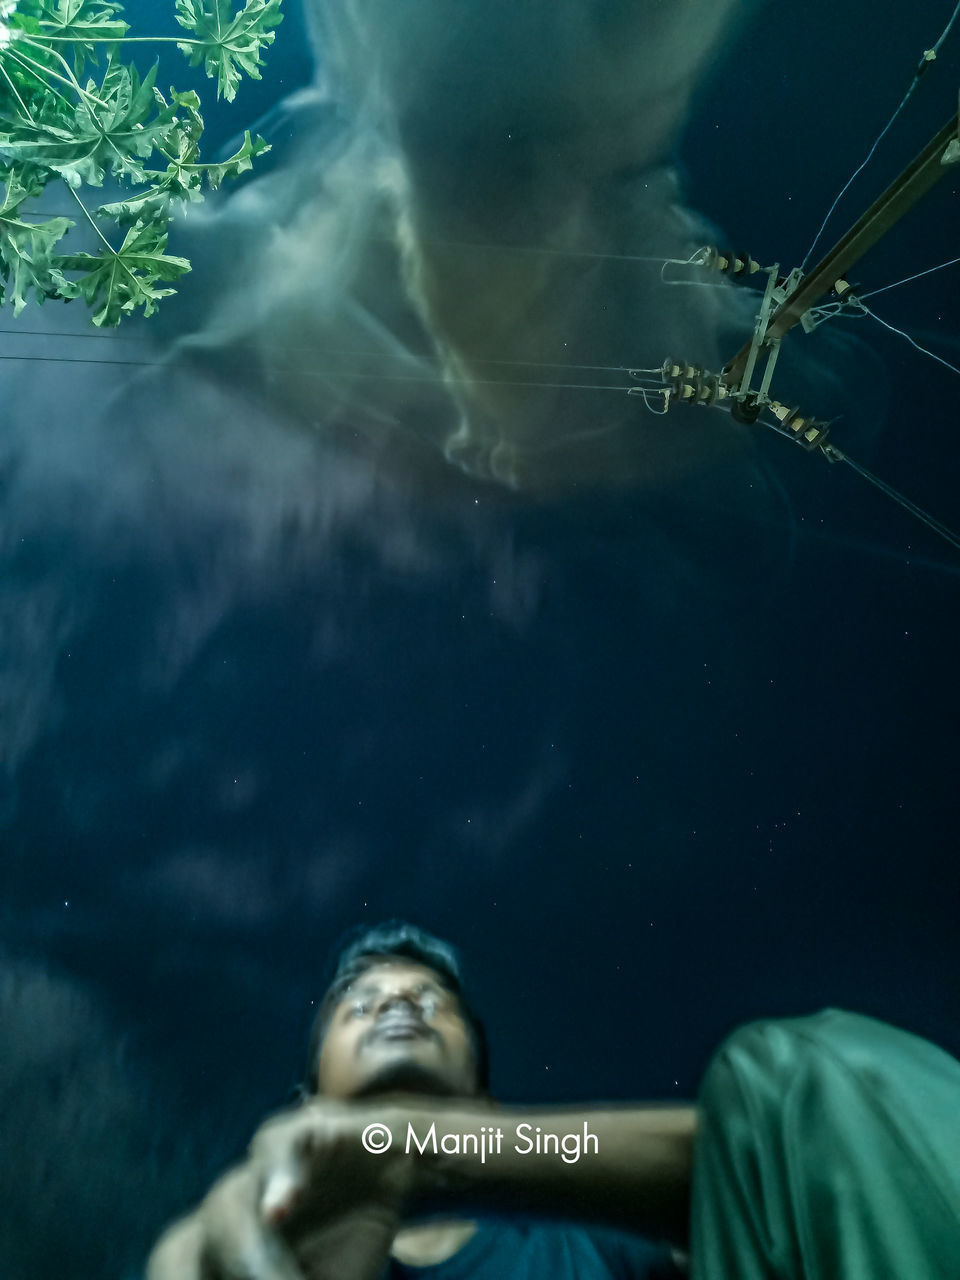 REFLECTION OF MAN IN SEA